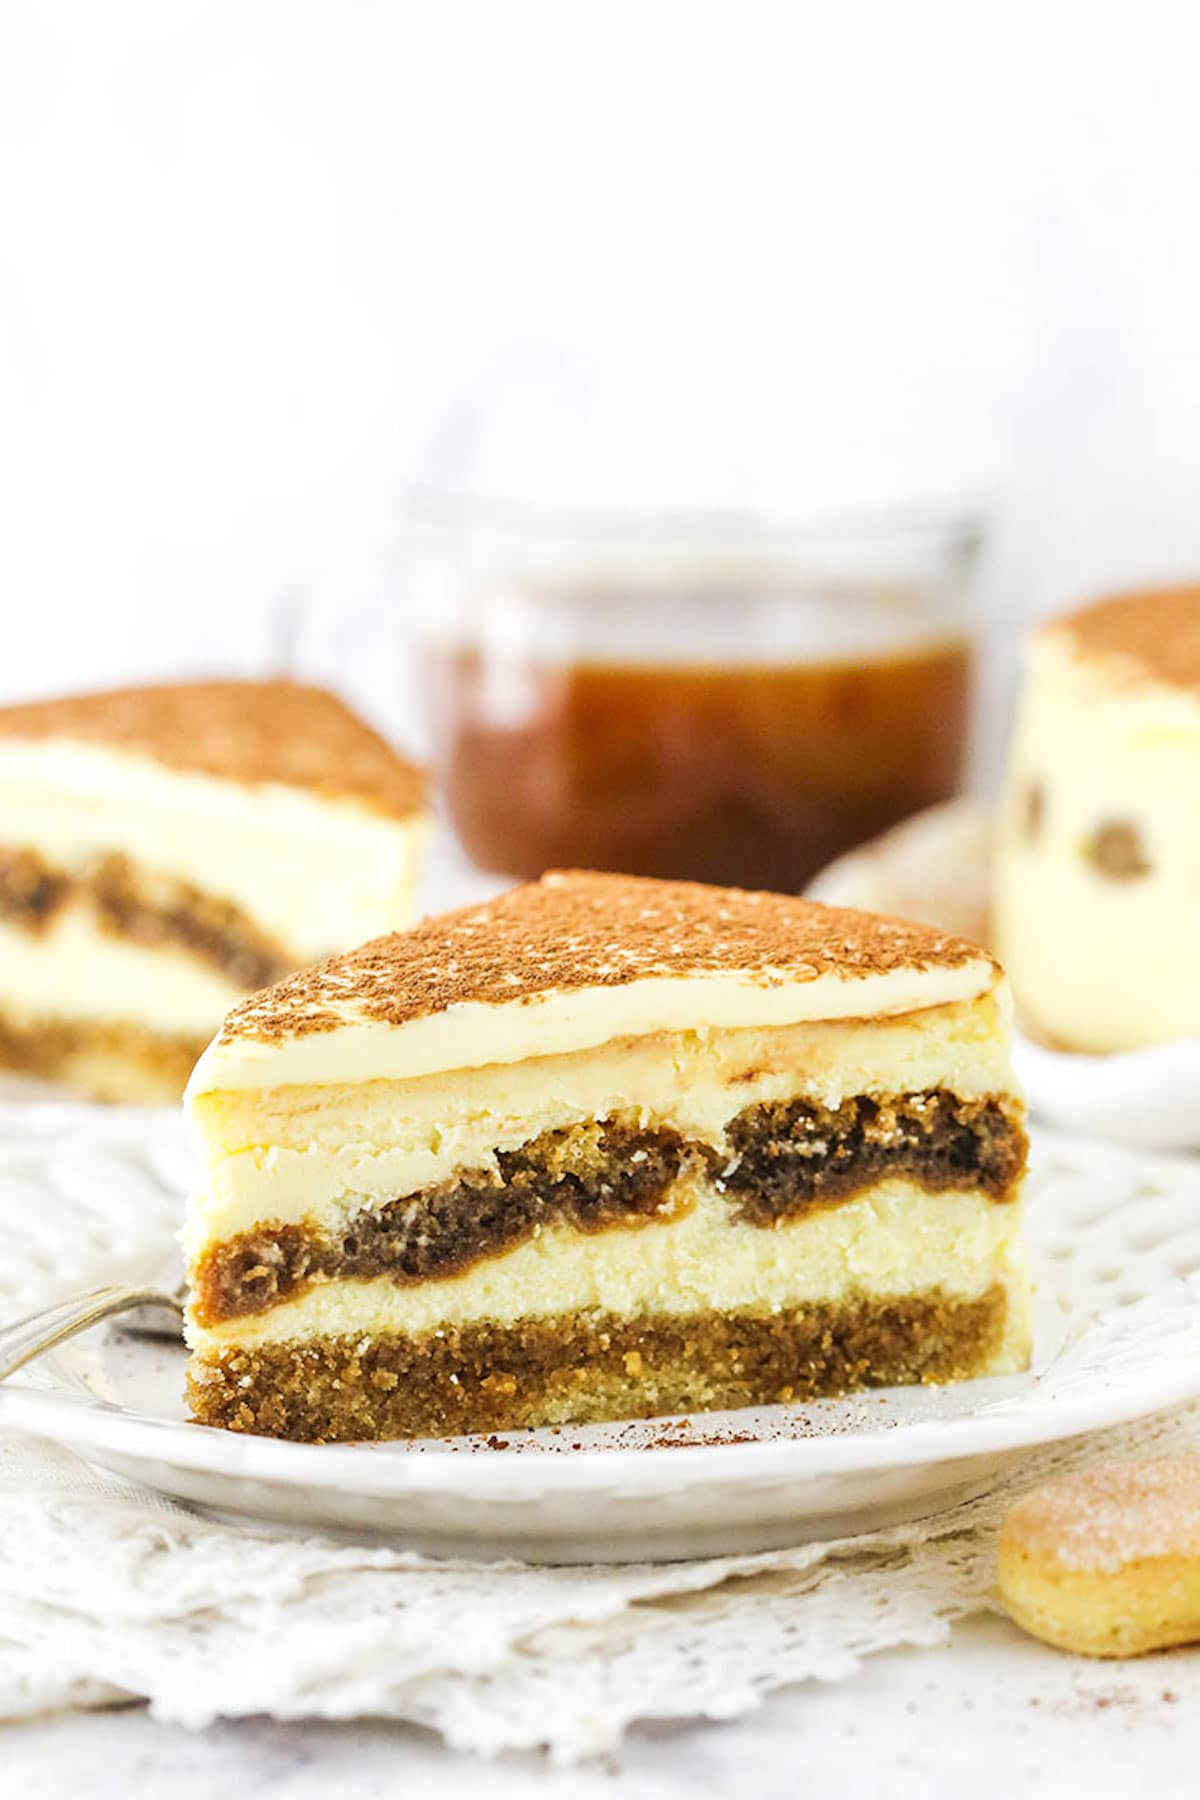 A Slice of Tiramisu Cake Sitting on a White Plate on Top of a Pile of Doileys